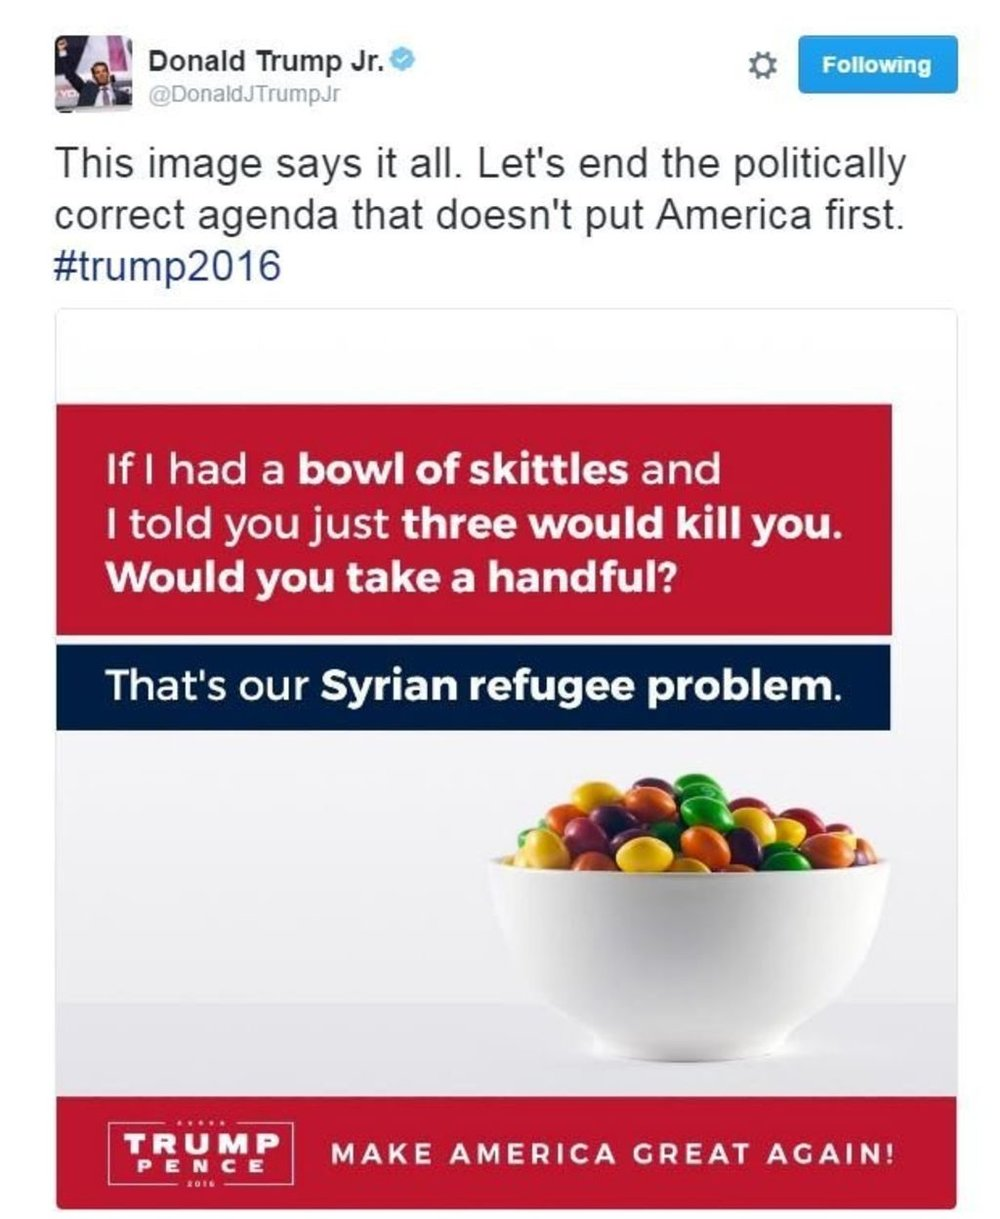 Example of anti-refugee rhetoric